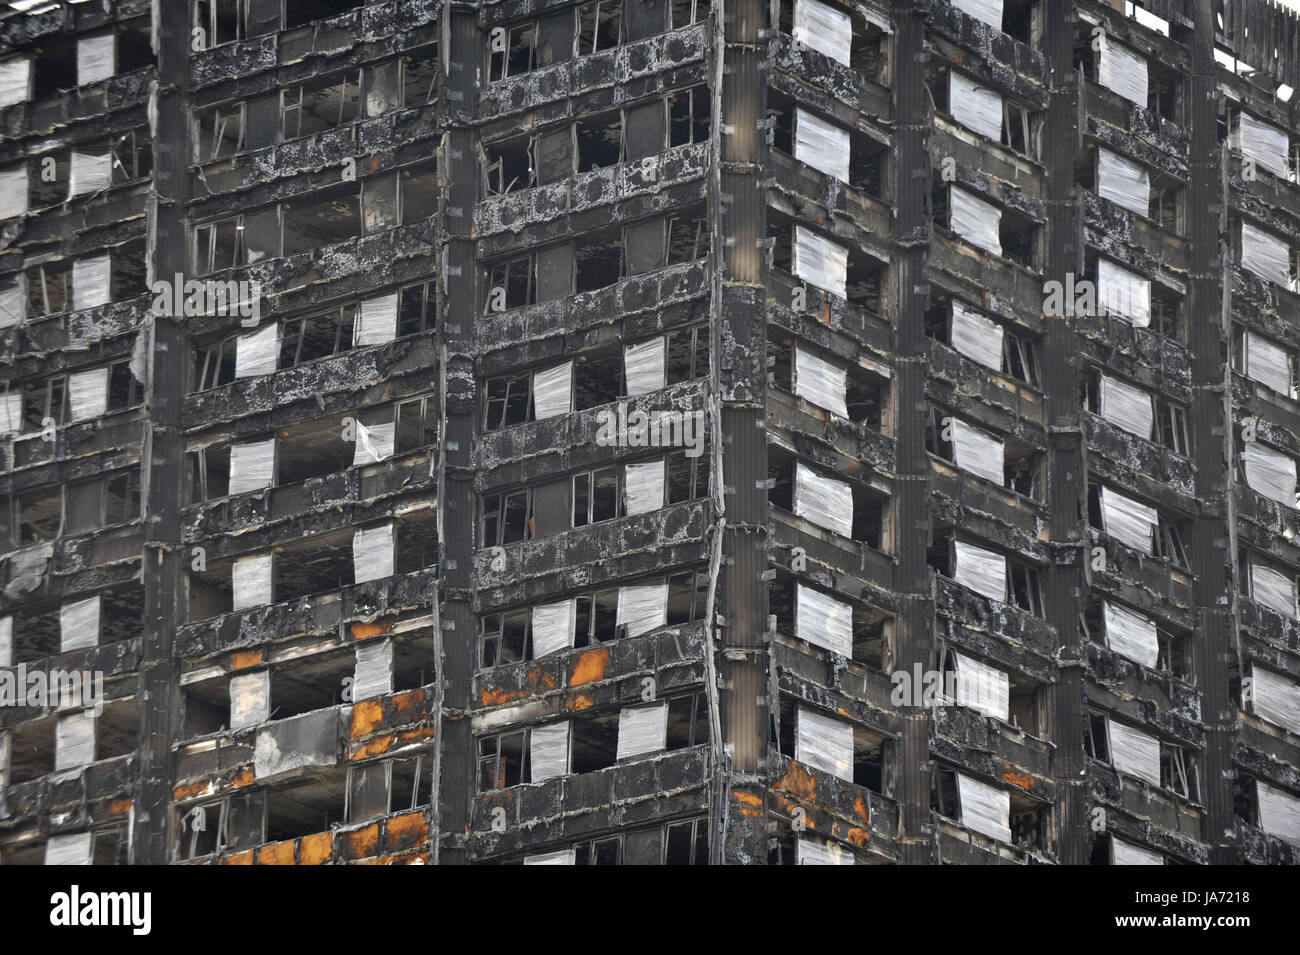 London, UK.  24 August 2017.  The burned out shell of Grenfell Tower stands near the route of the upcoming Notting - Stock Image